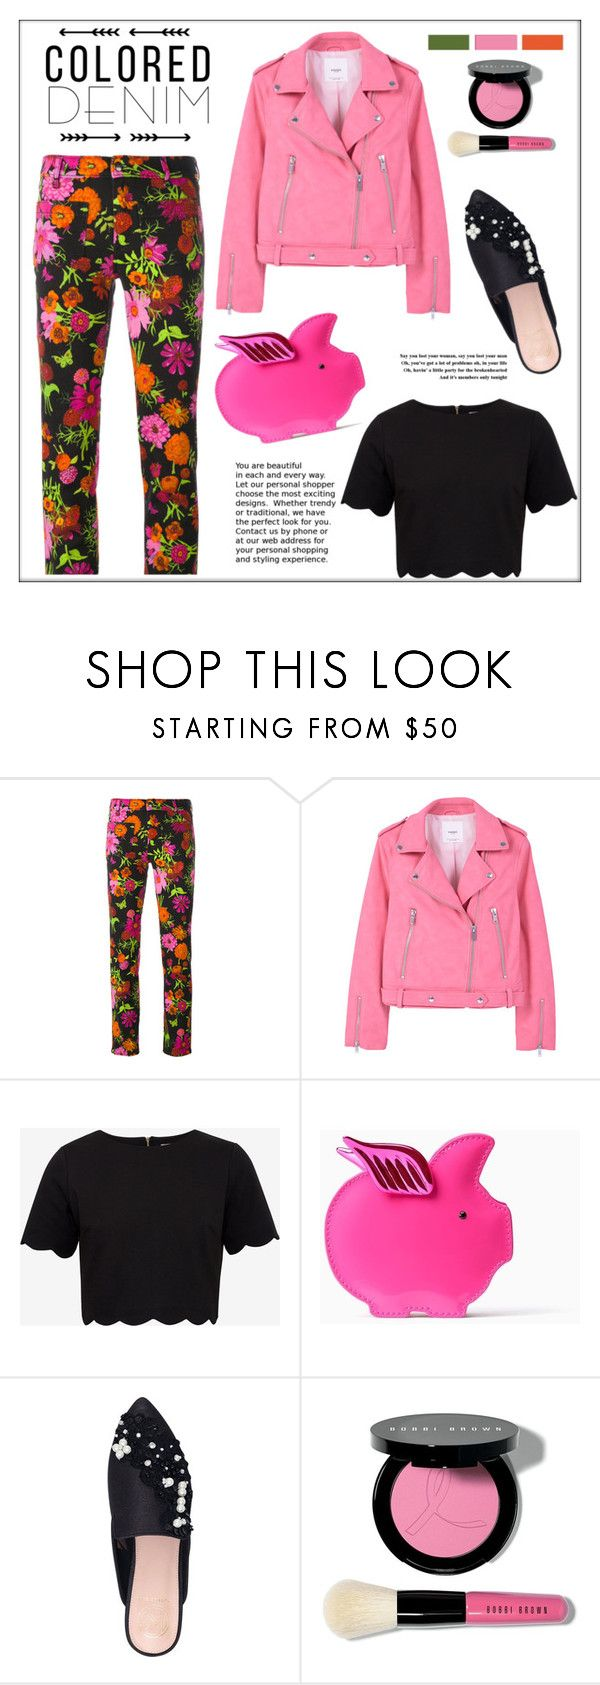 """""""Spring Trend: Colored Denim"""" by pat912 ❤ liked on Polyvore featuring The Seafarer, MANGO, Ted Baker, Kate Spade, KG Kurt Geiger, Bobbi Brown Cosmetics, coloredjeans and polyvoreeditorial"""